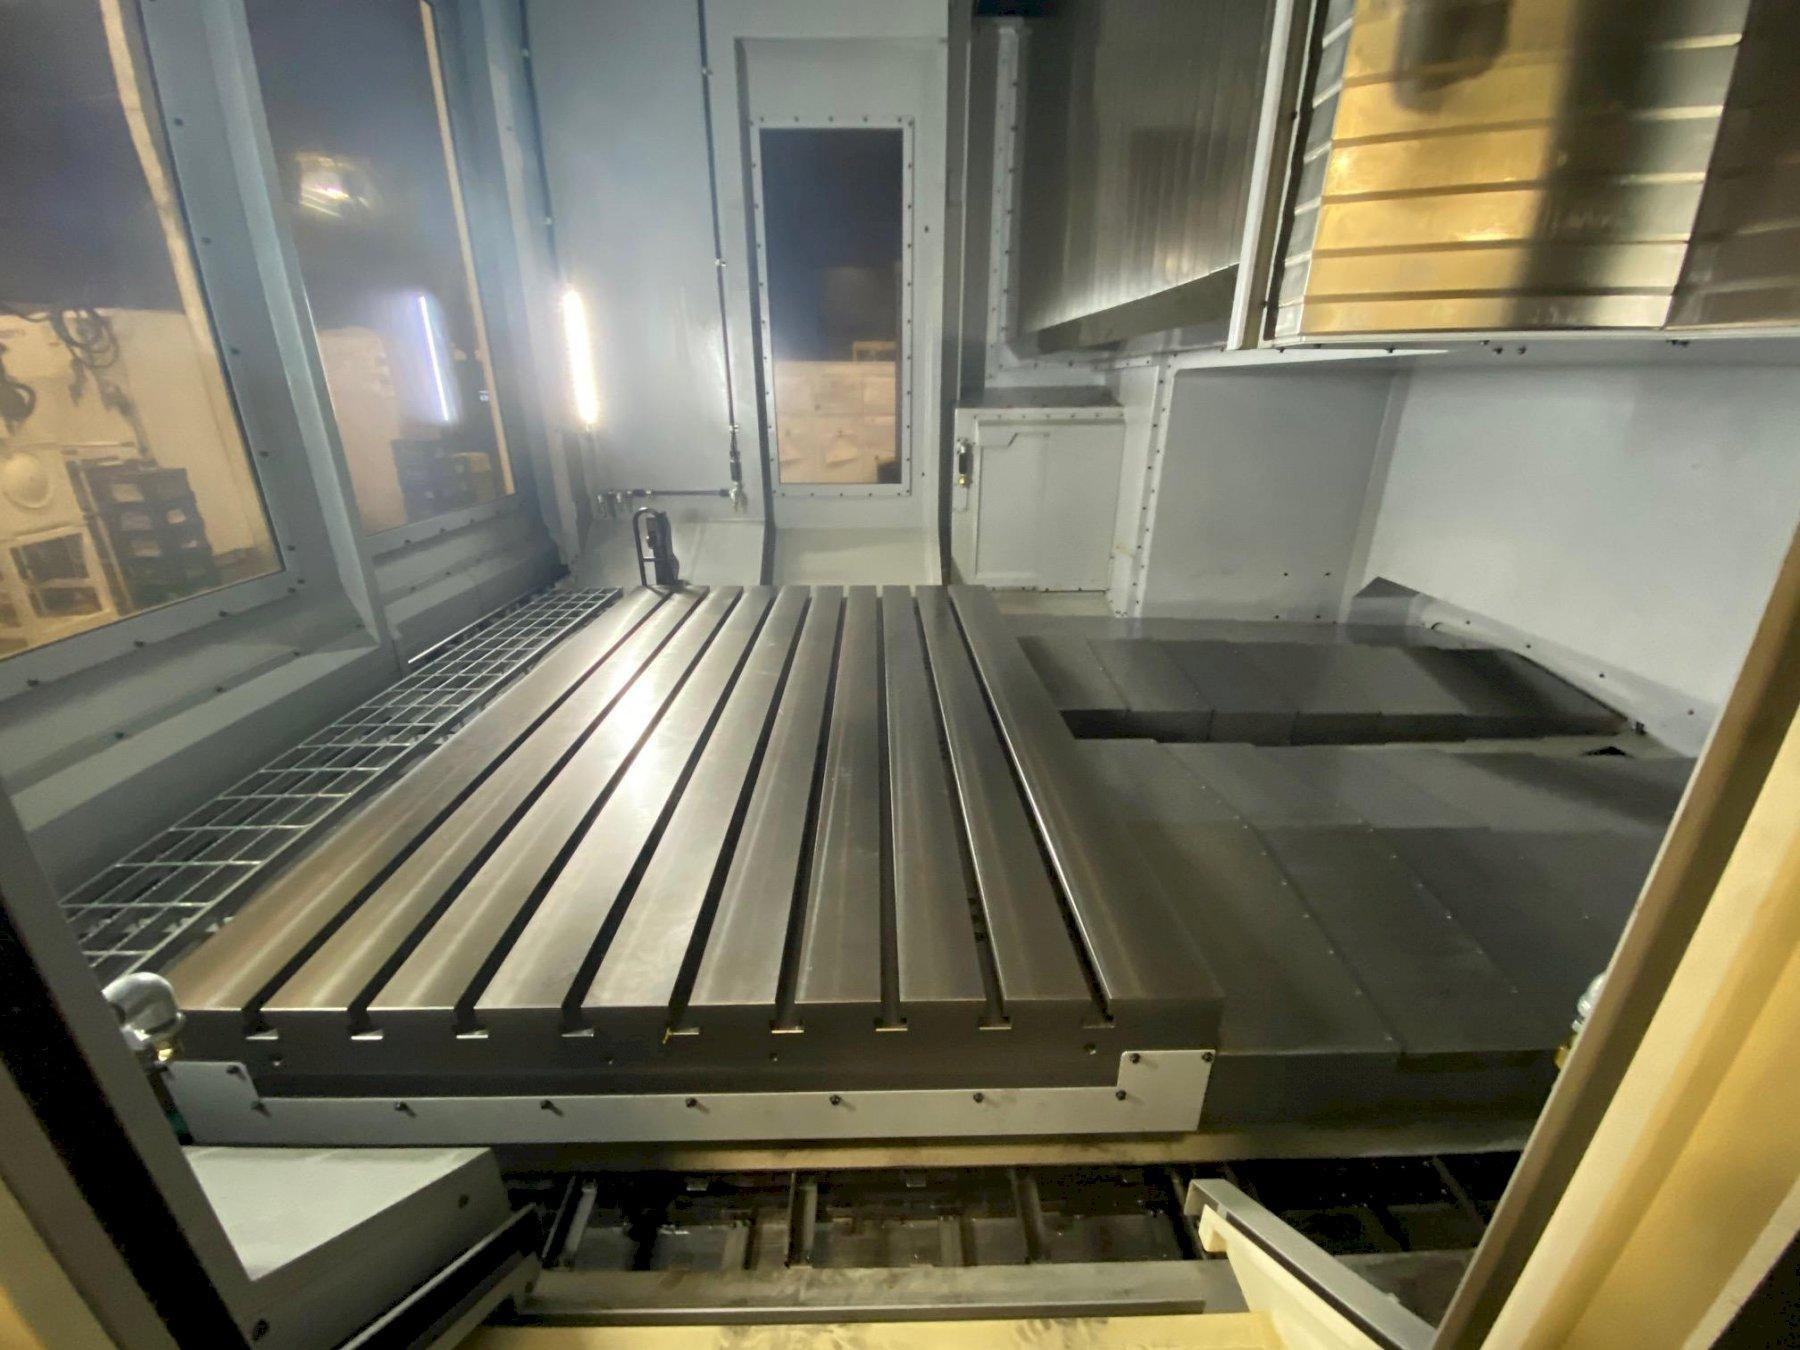 Makino V90S - 5-Axis CNC Vertical Machining Center (2018) NEVER USED